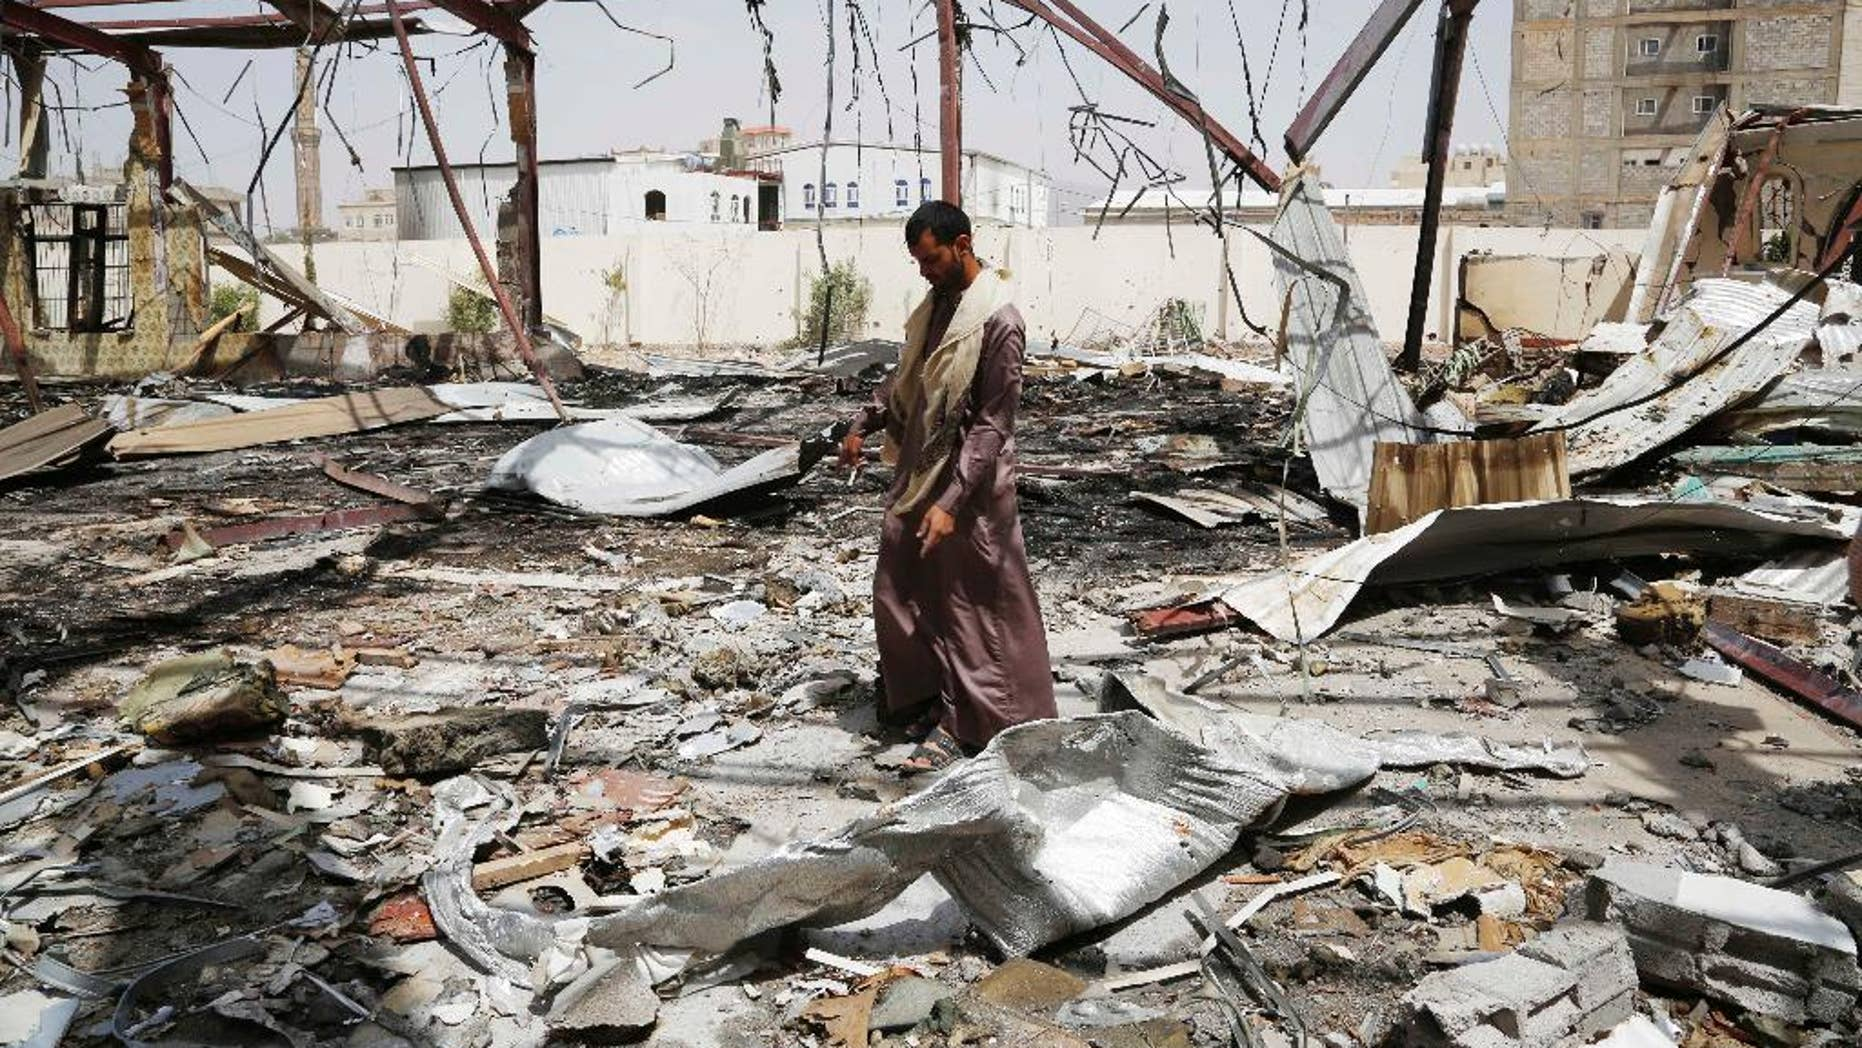 A man stands on the rubble of a wedding hall destroyed by a Saudi-led airstrike in Sanaa, Yemen, Friday, July 10, 2015. More than 3,000 people have been killed since March, when a Saudi-led and U.S.-backed coalition began launching airstrikes against the rebels who seized control of the capital and other cities starting September. (AP Photo/Hani Mohammed)